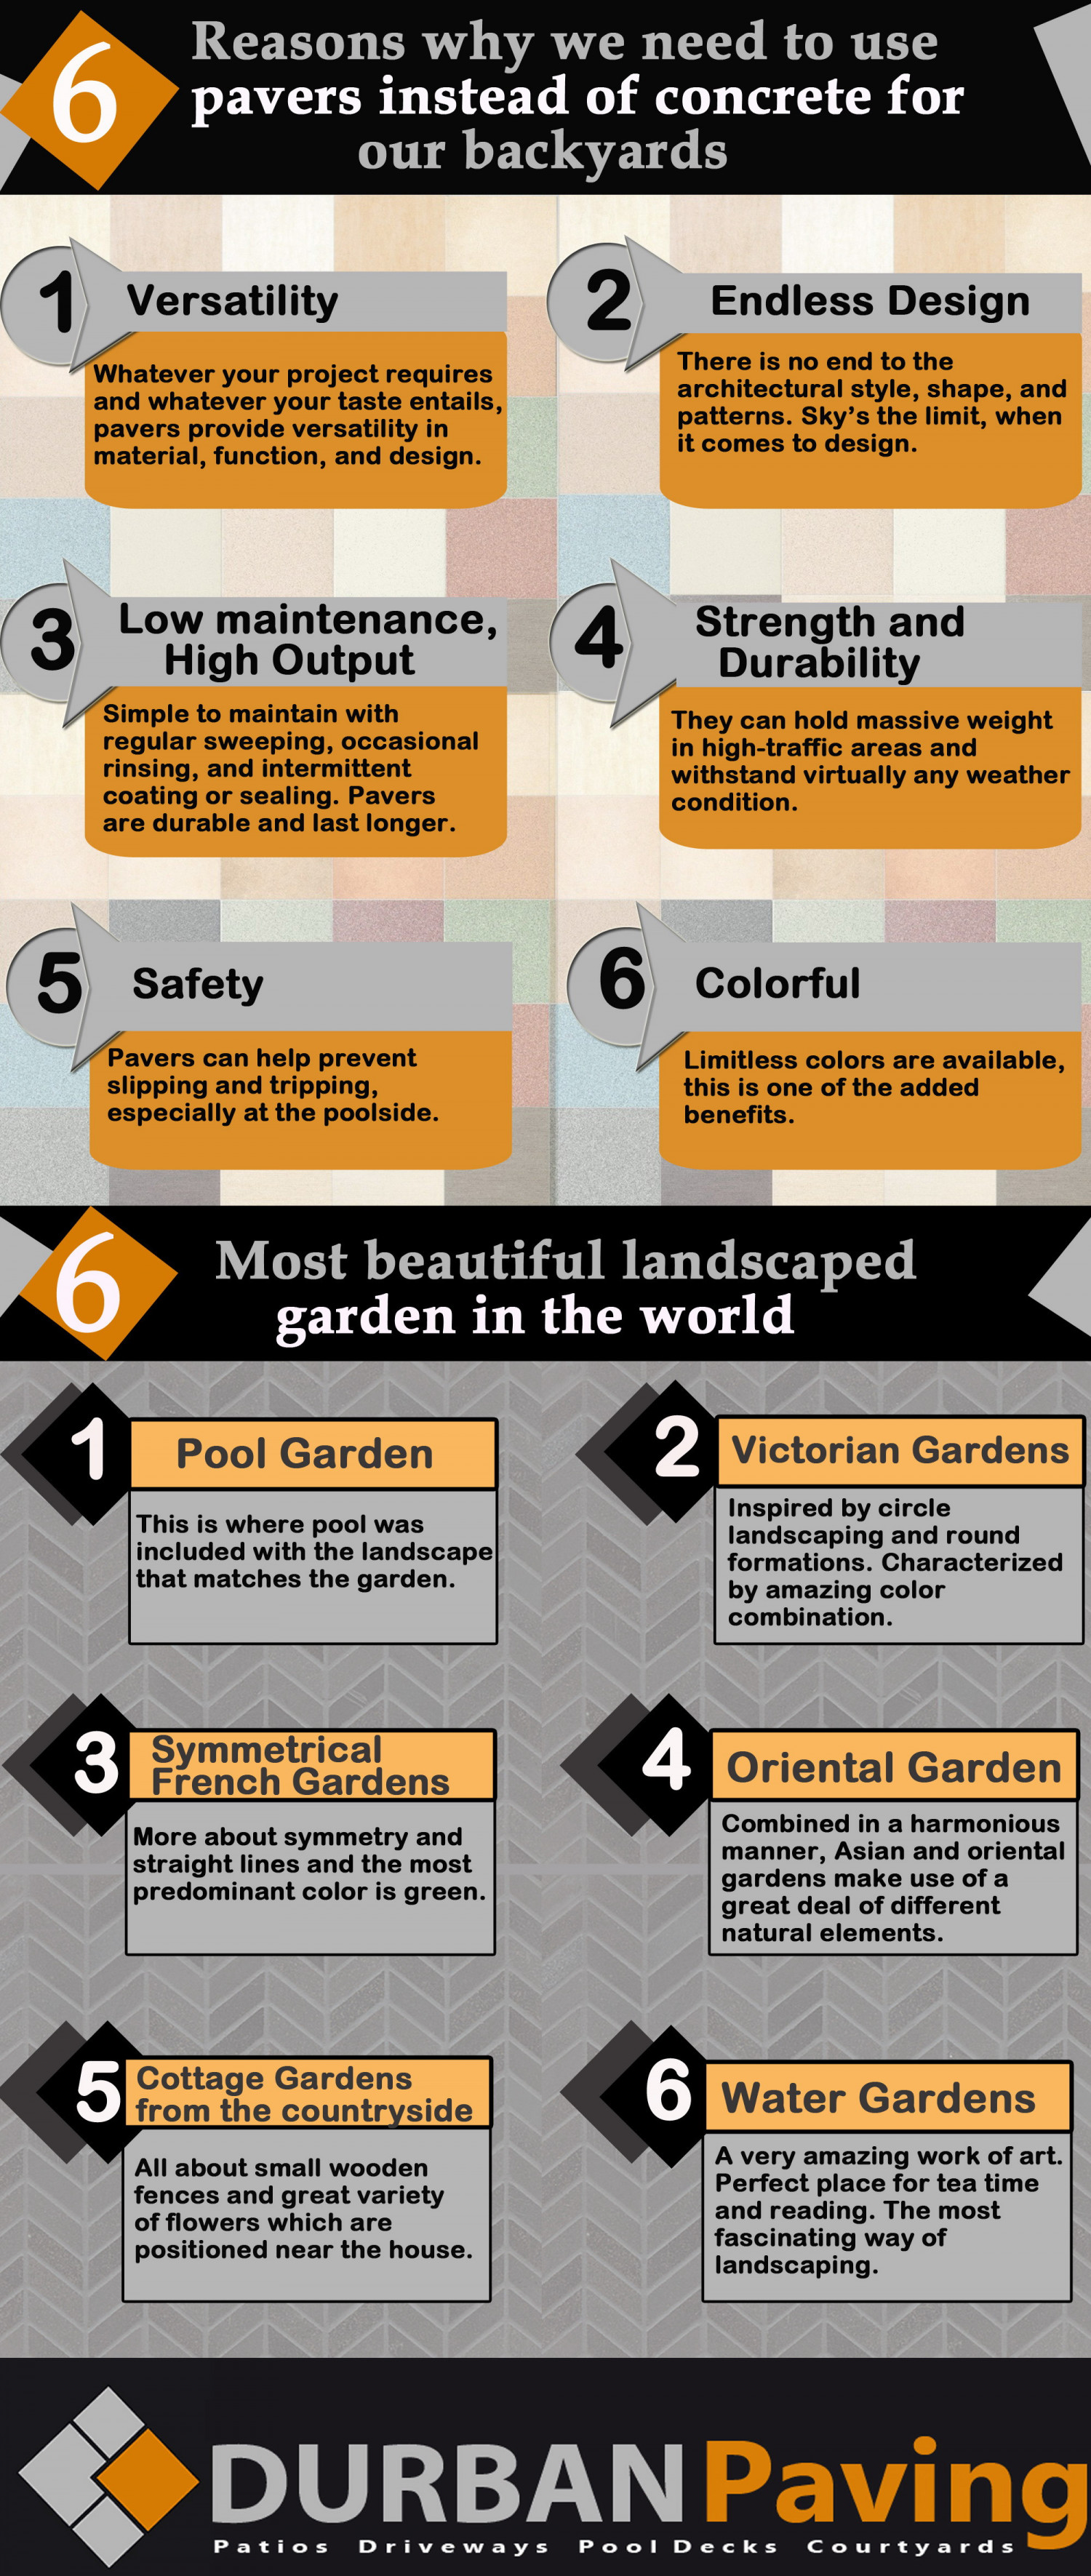 Advantages of using pavers in your backyard and not concrete Infographic